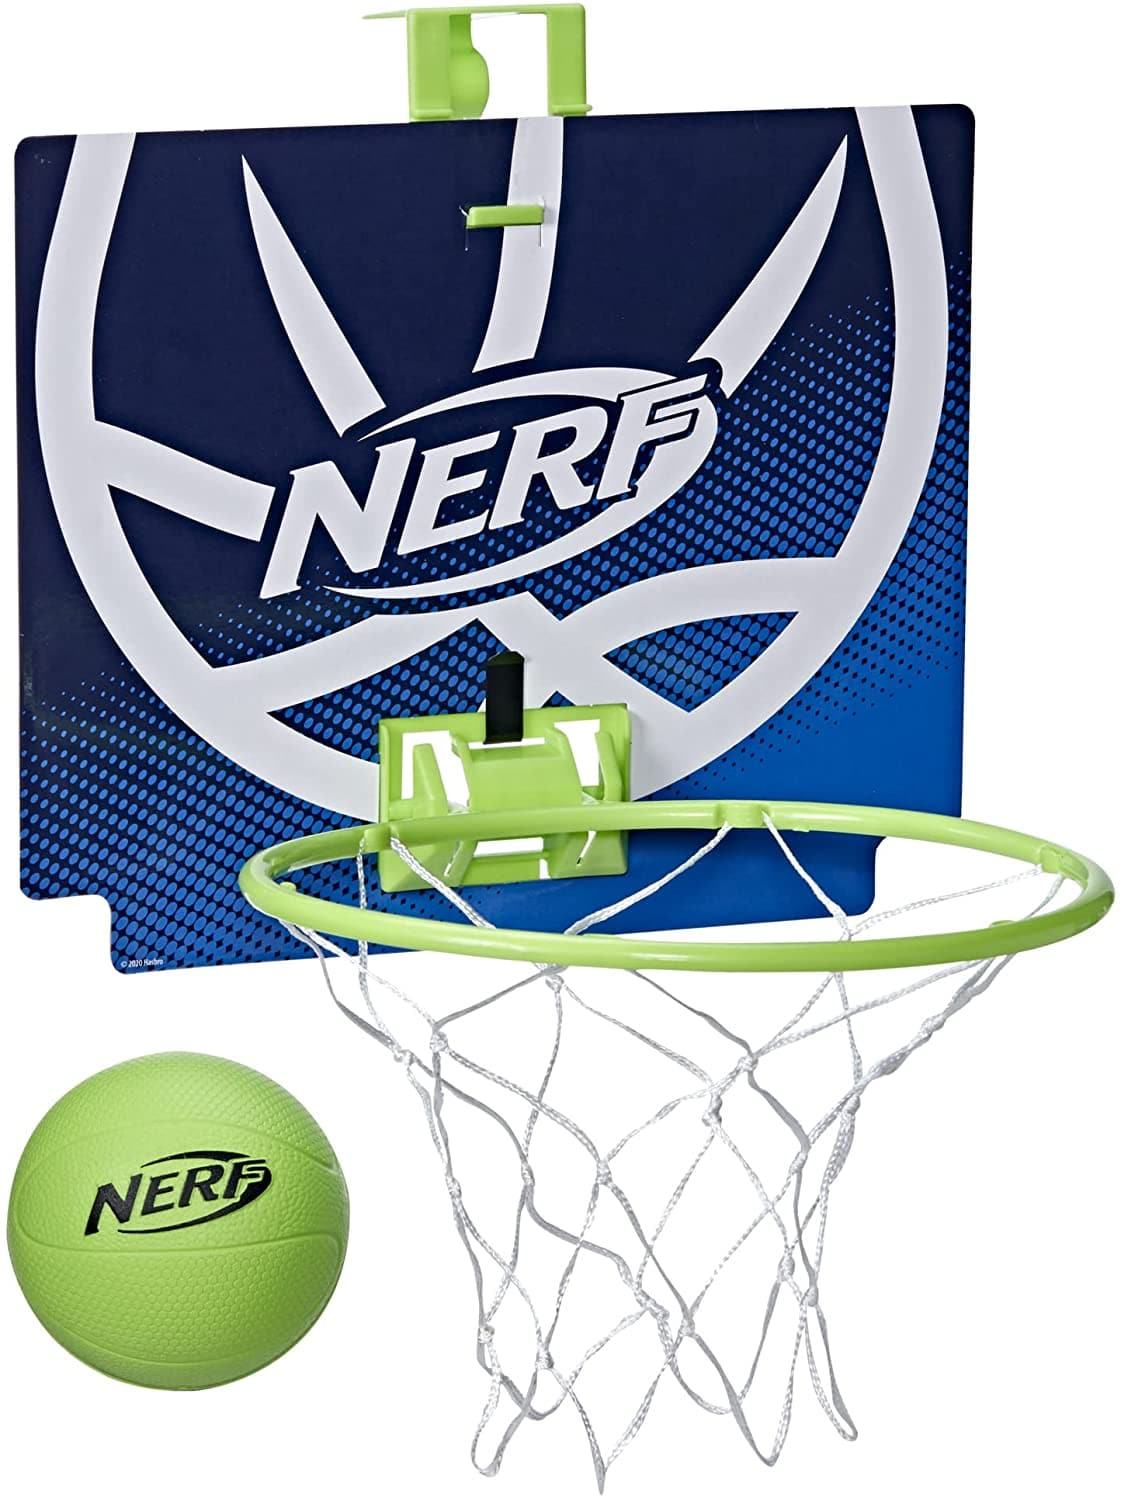 Nerf: Up to 30% off at Amazon, starting at $5.49 - Free Shipping w/Prime